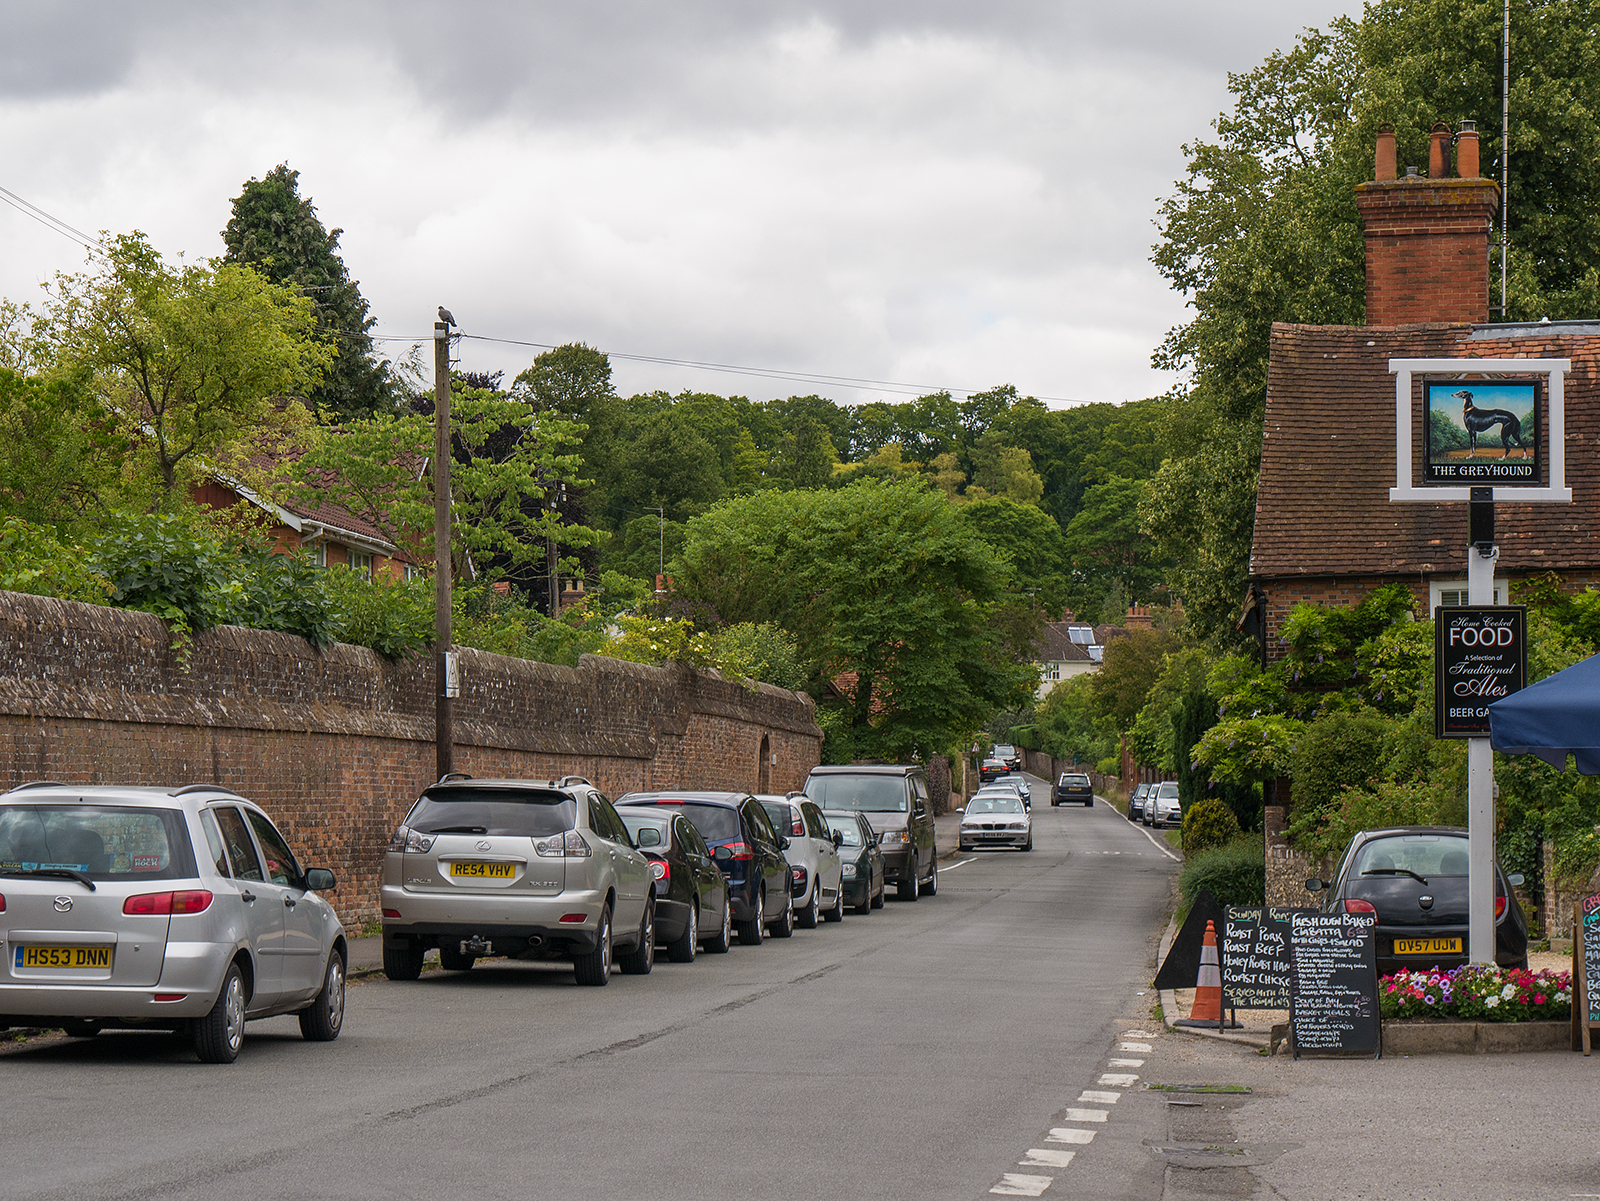 Heading up the main street in Whitchurch